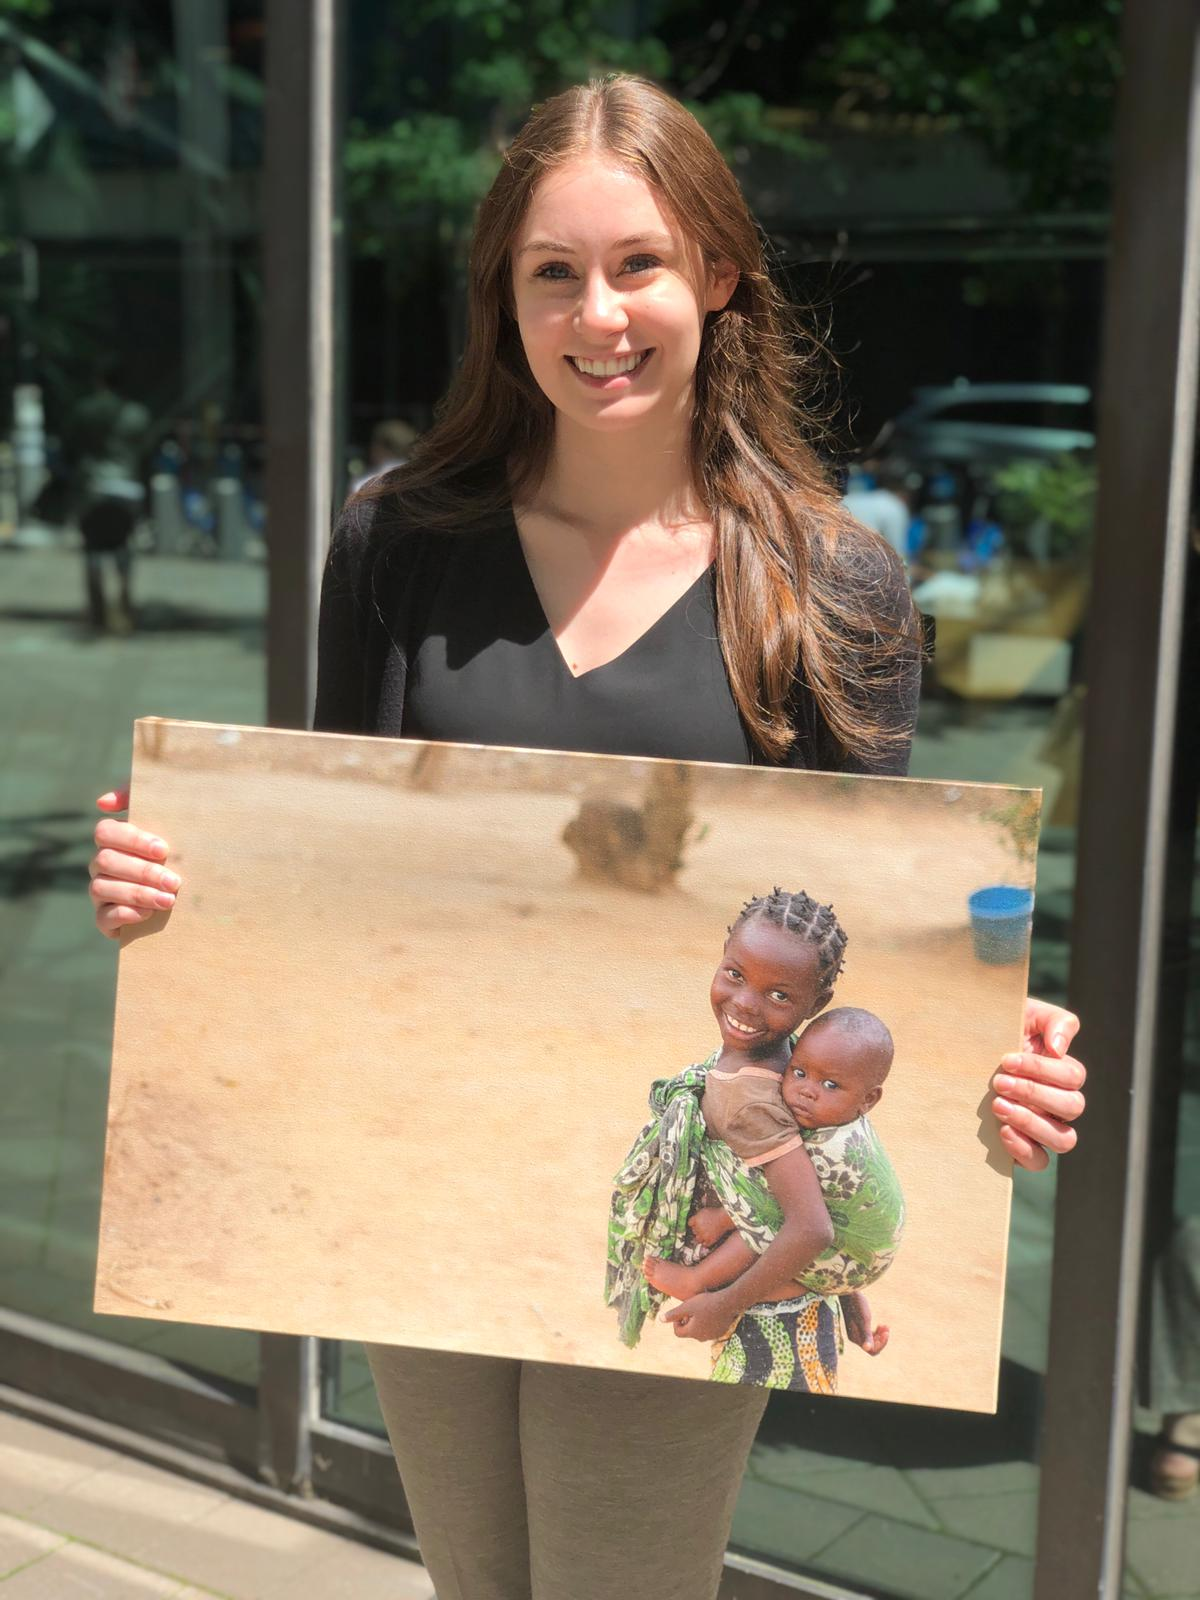 Nina is a CMMB intern and she poses outside with a canvas image of two children we serve in the field